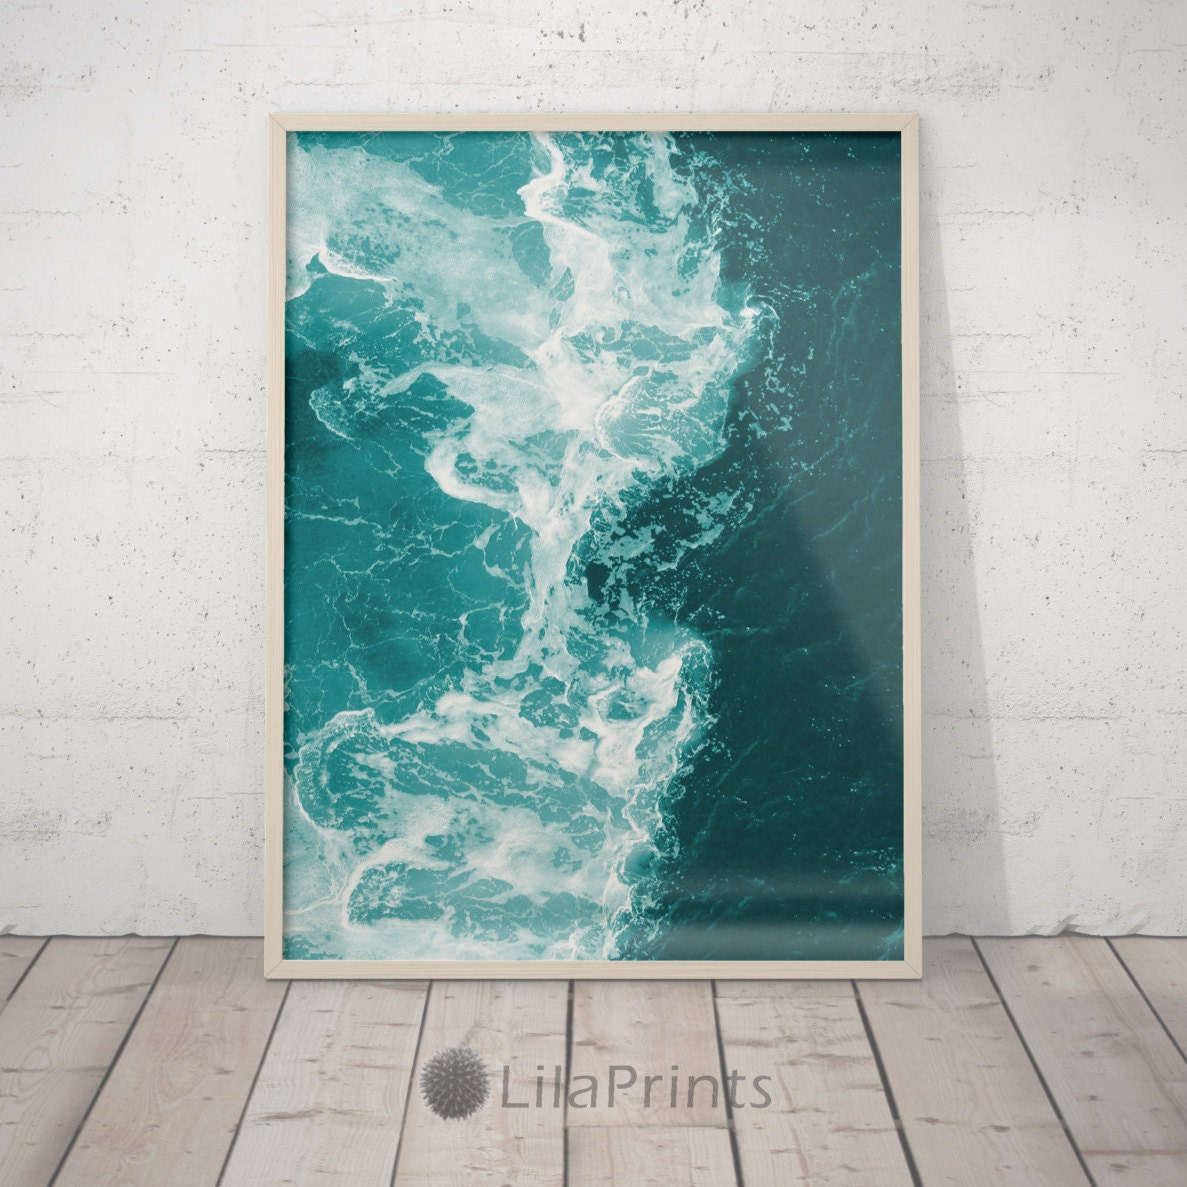 water photography  etsy, Home designs